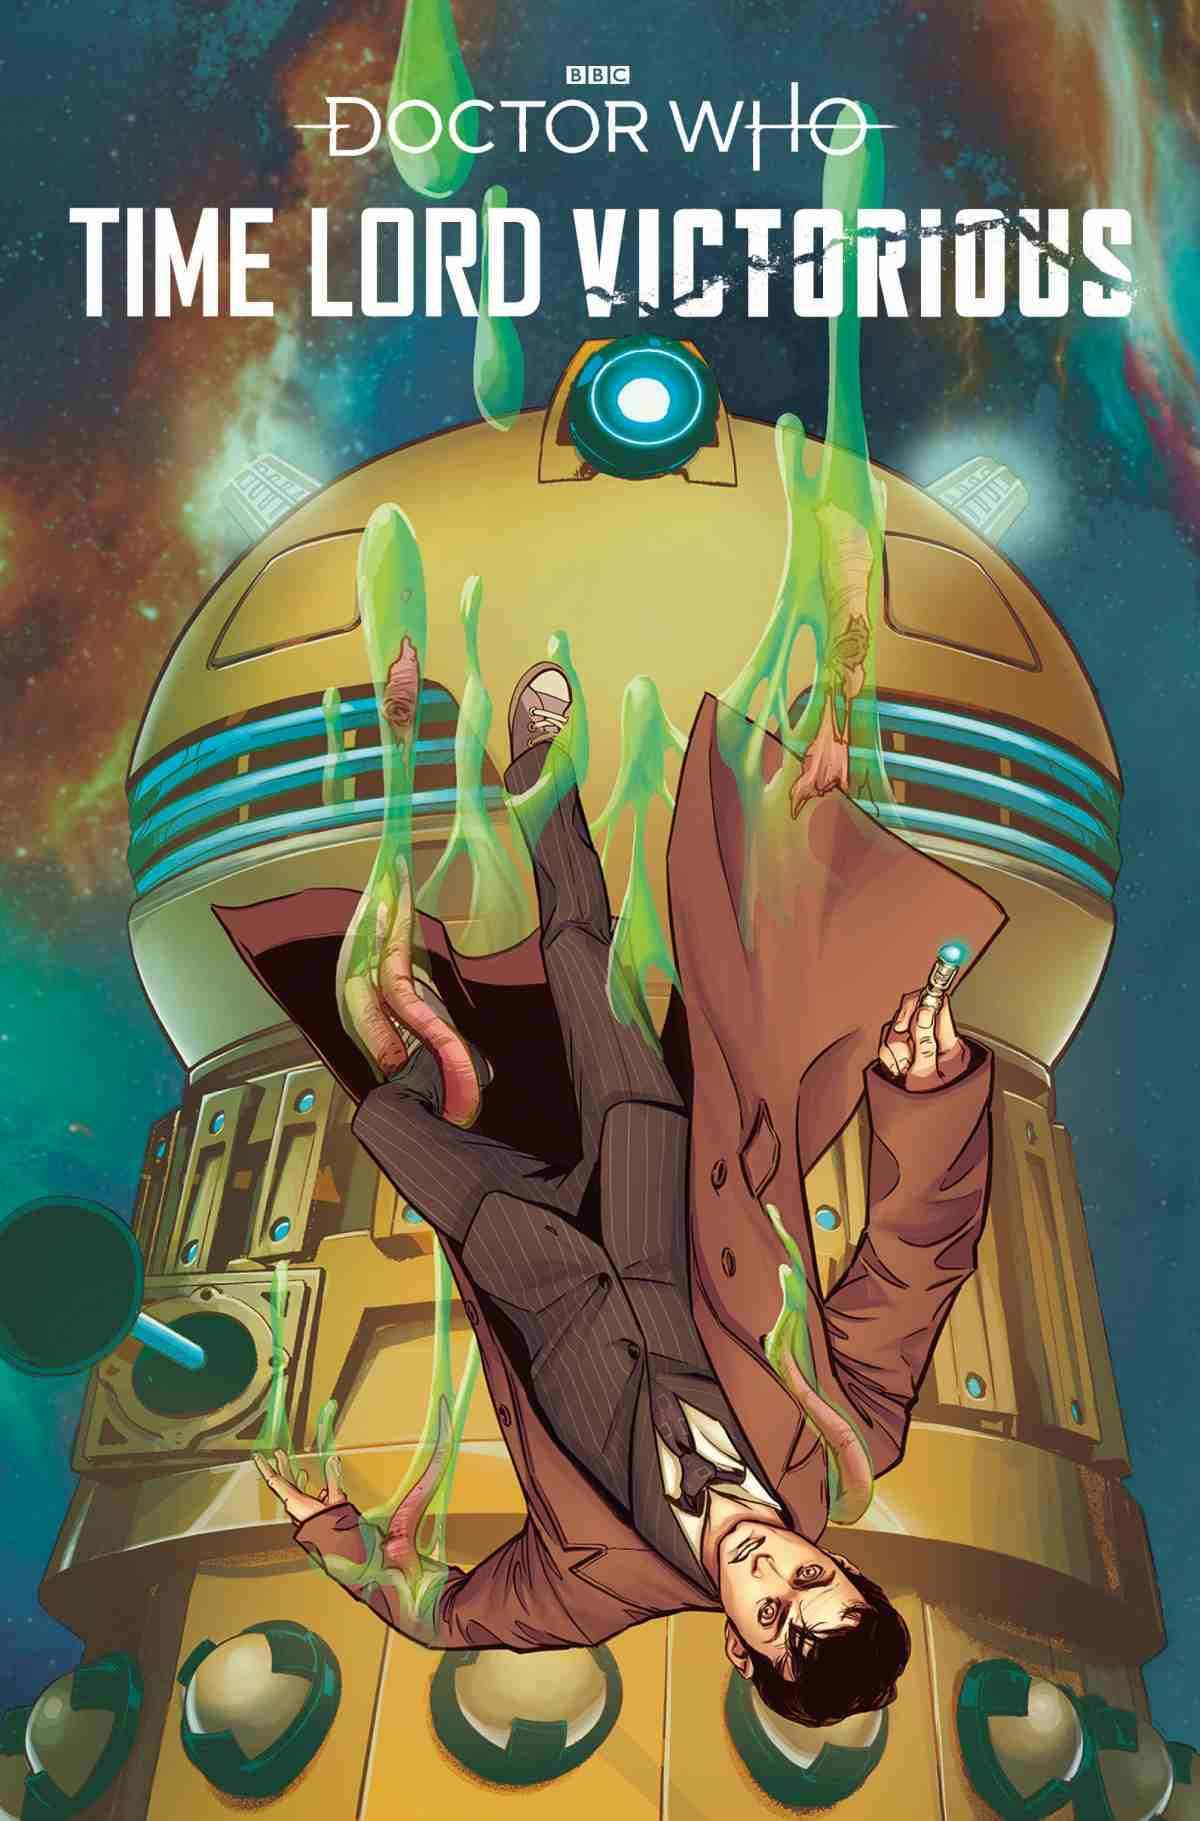 DOCTOR WHO TIME LORD VICTORIOUS #1 COVER B PRISCILLA PETRAITES